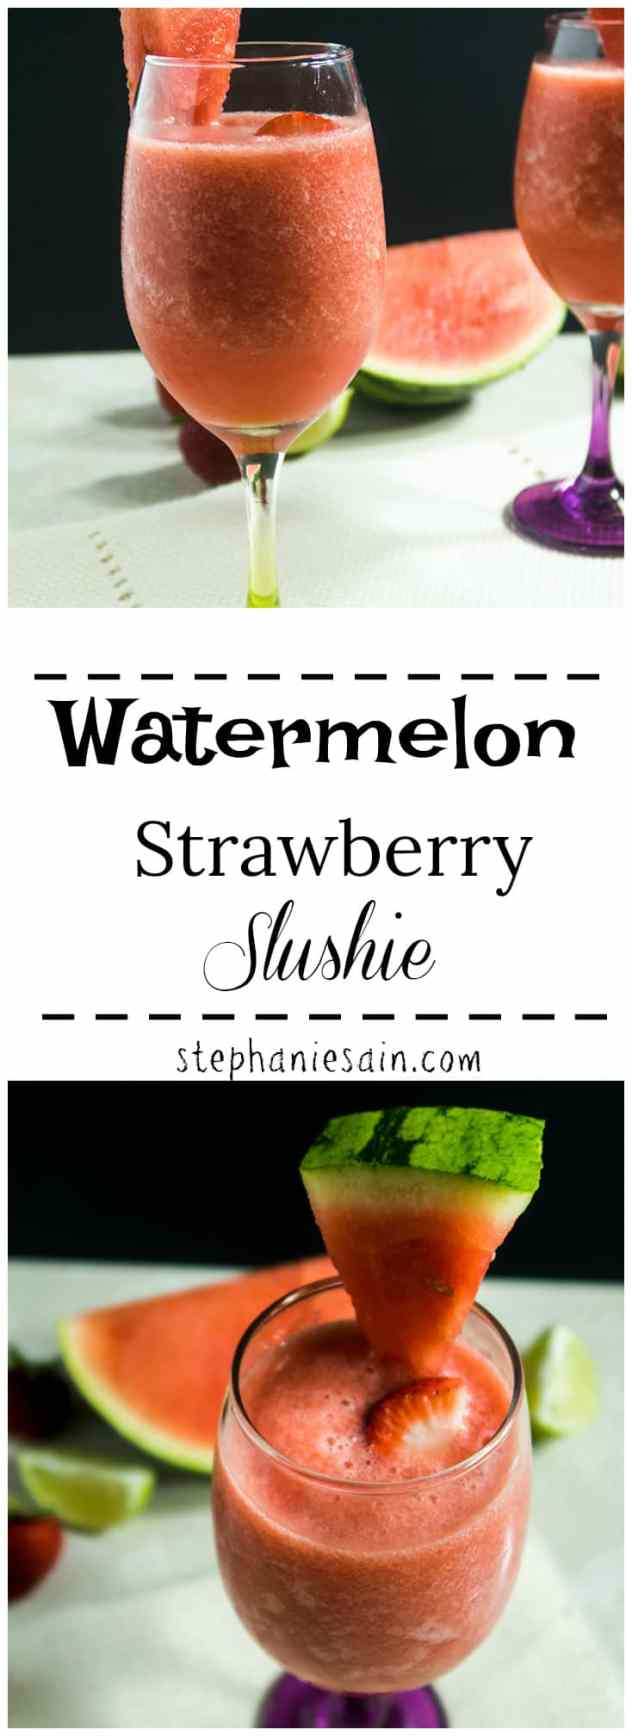 Watermelon Strawberry Slushie requires only three ingredients. Kid friendly but can also easily become a tasty adult beverage. Vegan & Gluten Free.